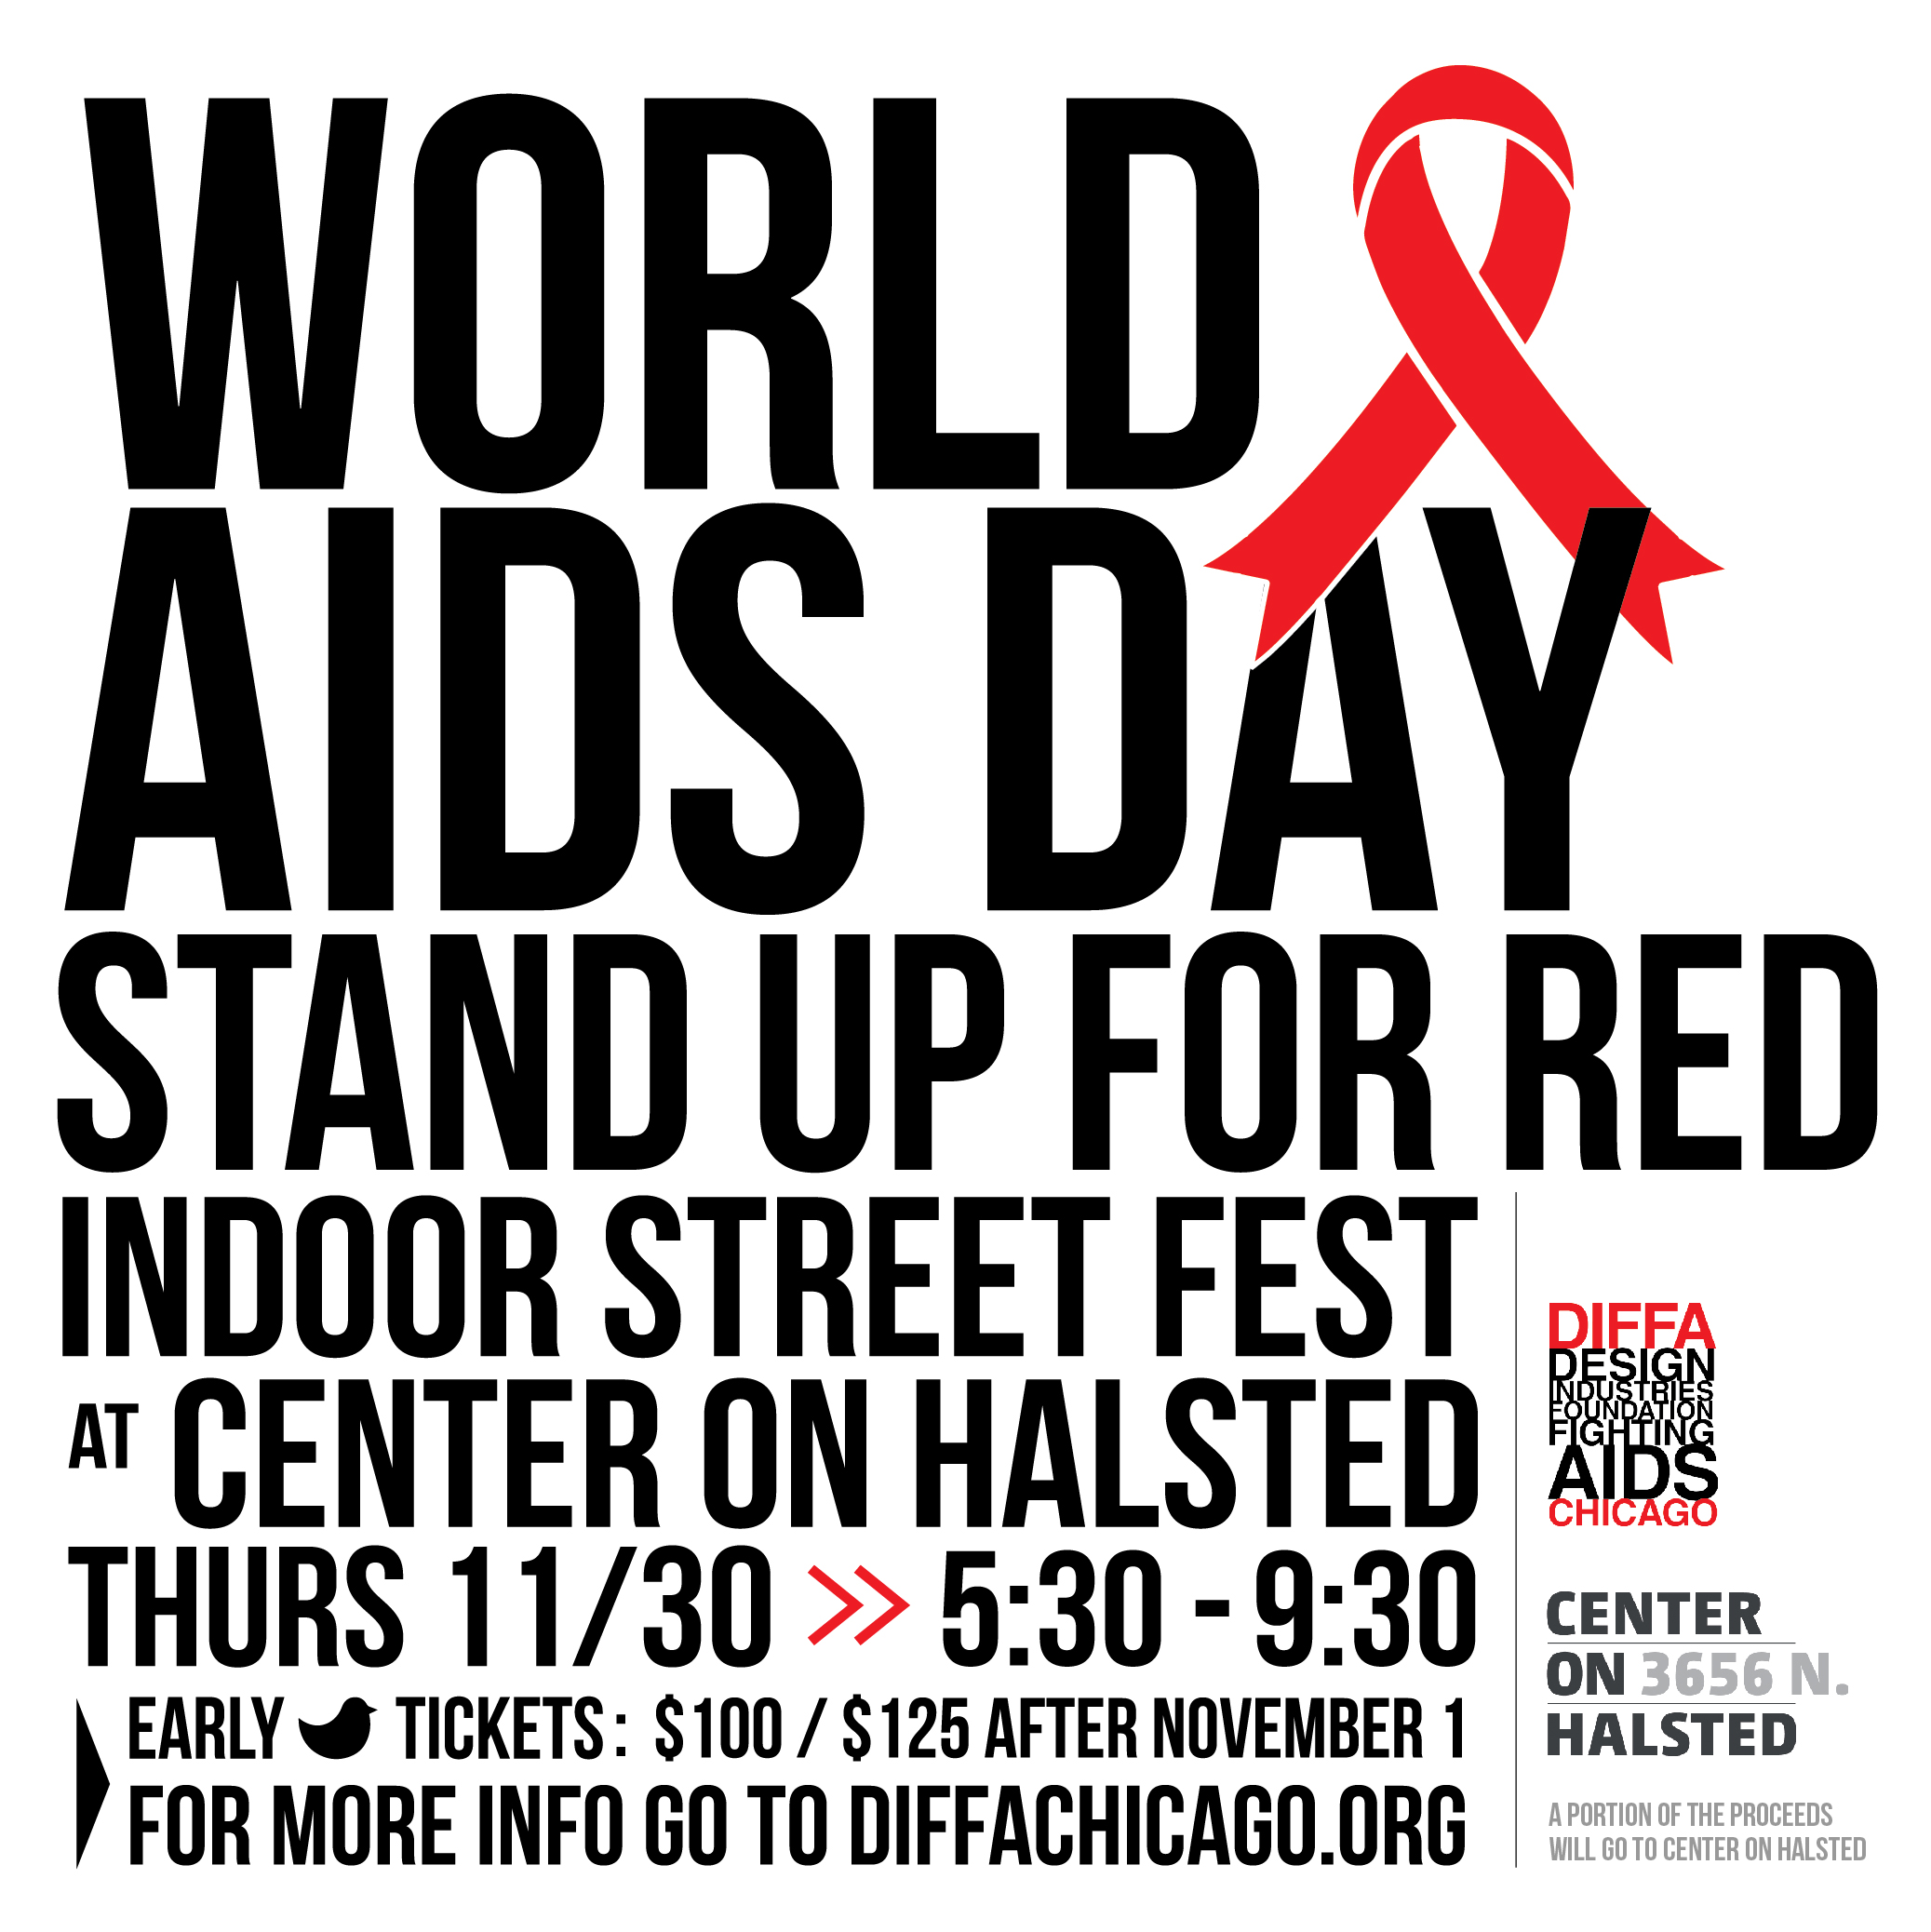 World AIDS Day STAND UP FOR RED - Indoor Street Fest